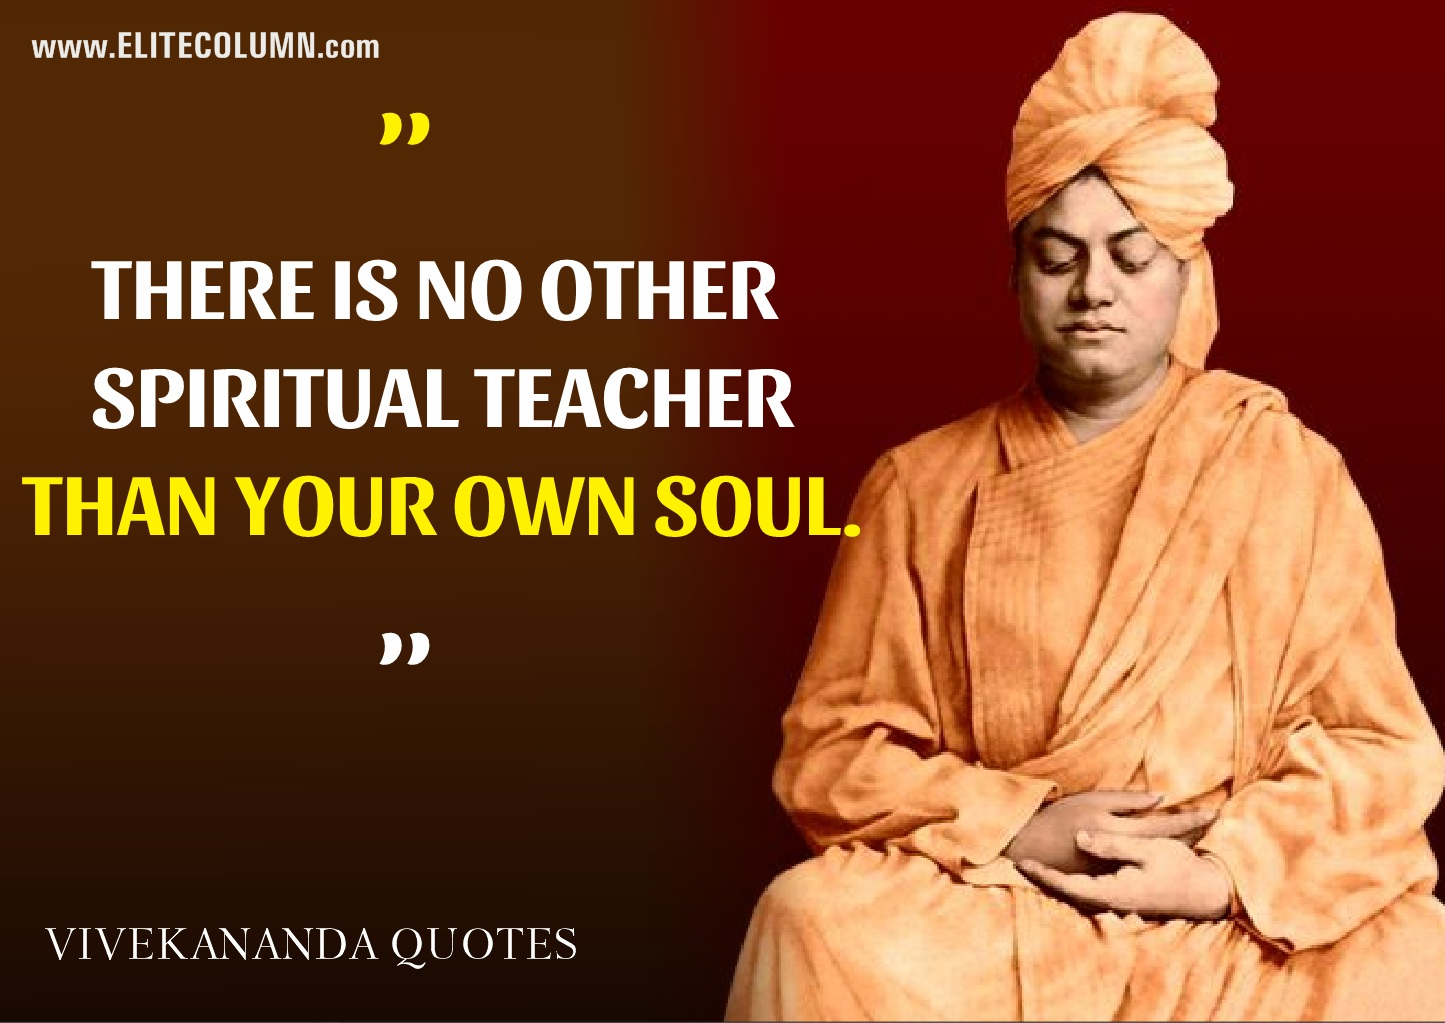 Quotes Vivekananda Glamorous 10 Swami Vivekananda Quotes Which Are Still Relevant  Elitecolumn